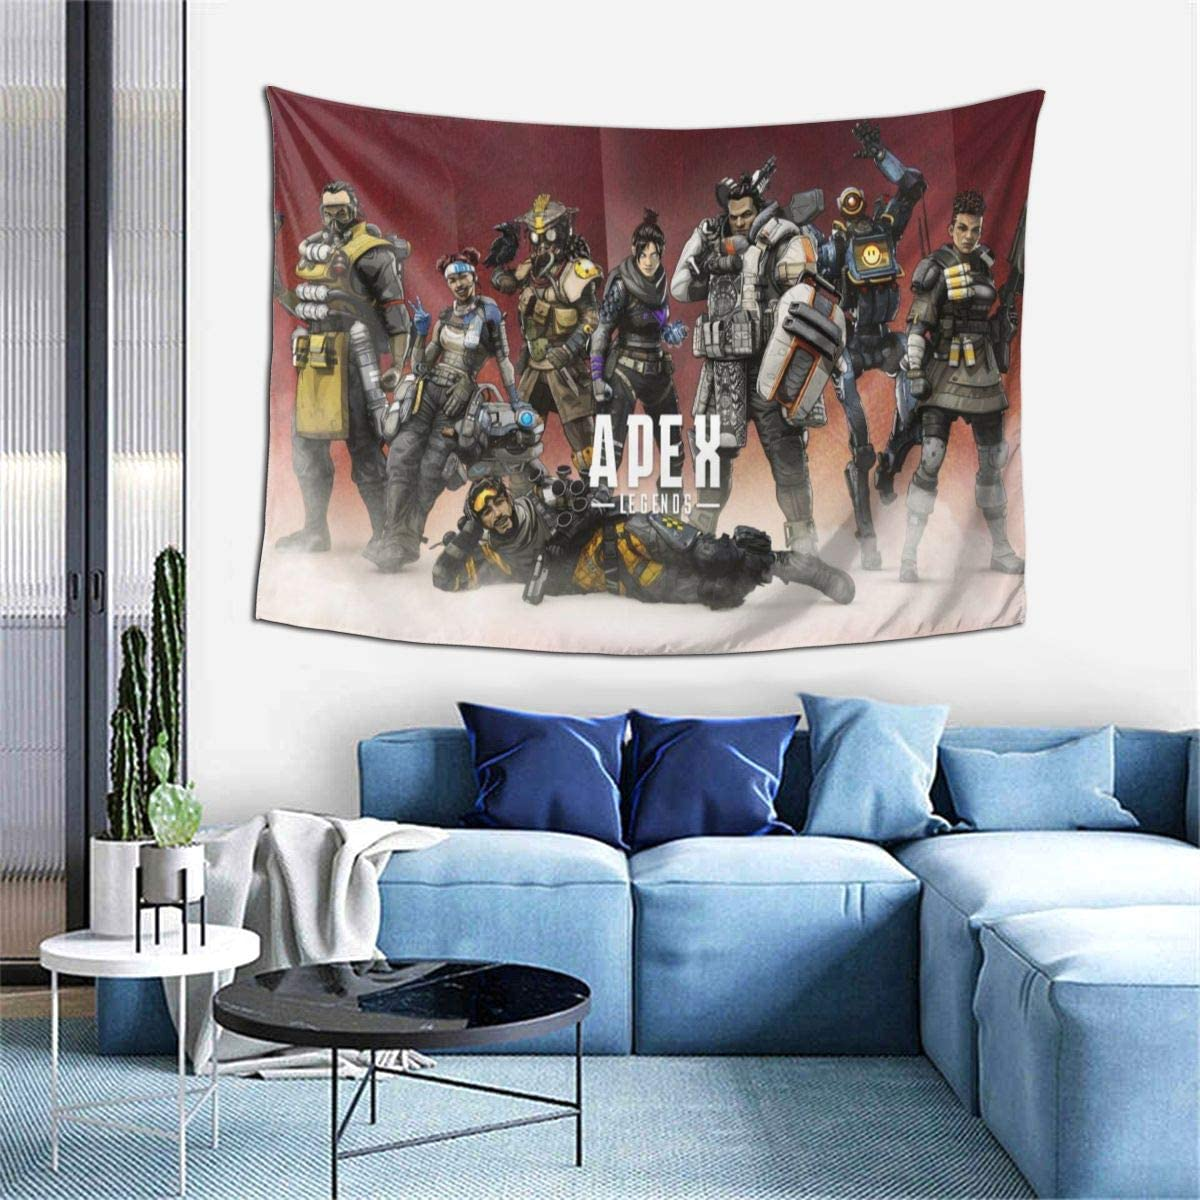 10. Apex Tapestry Art Wall Hanging